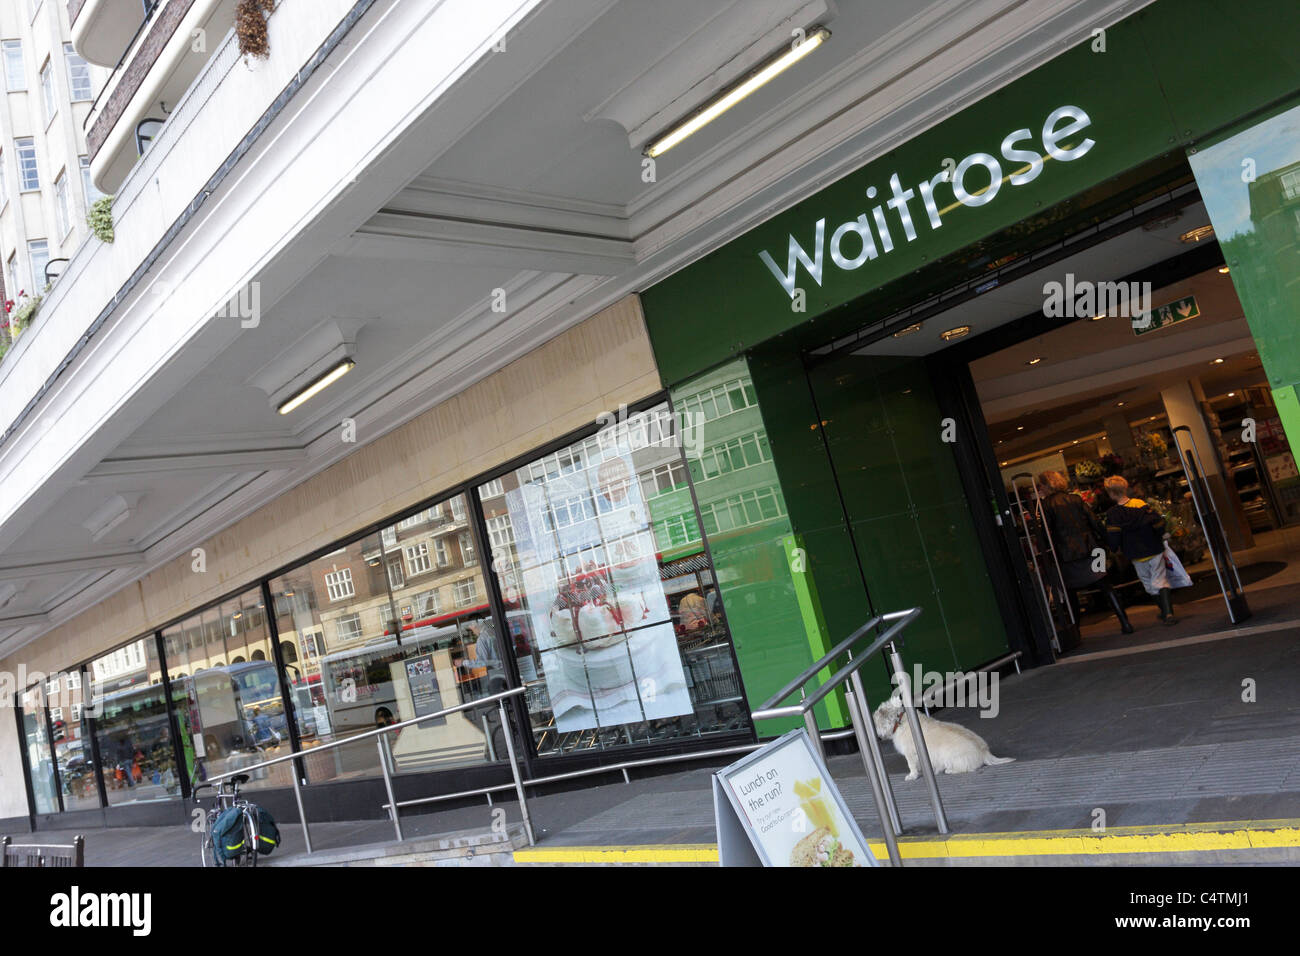 WAITROSE, their JOHN BARNES retail outlet at Finchley Road near Hampstead is viewed here at an extreme angled aspect. - Stock Image